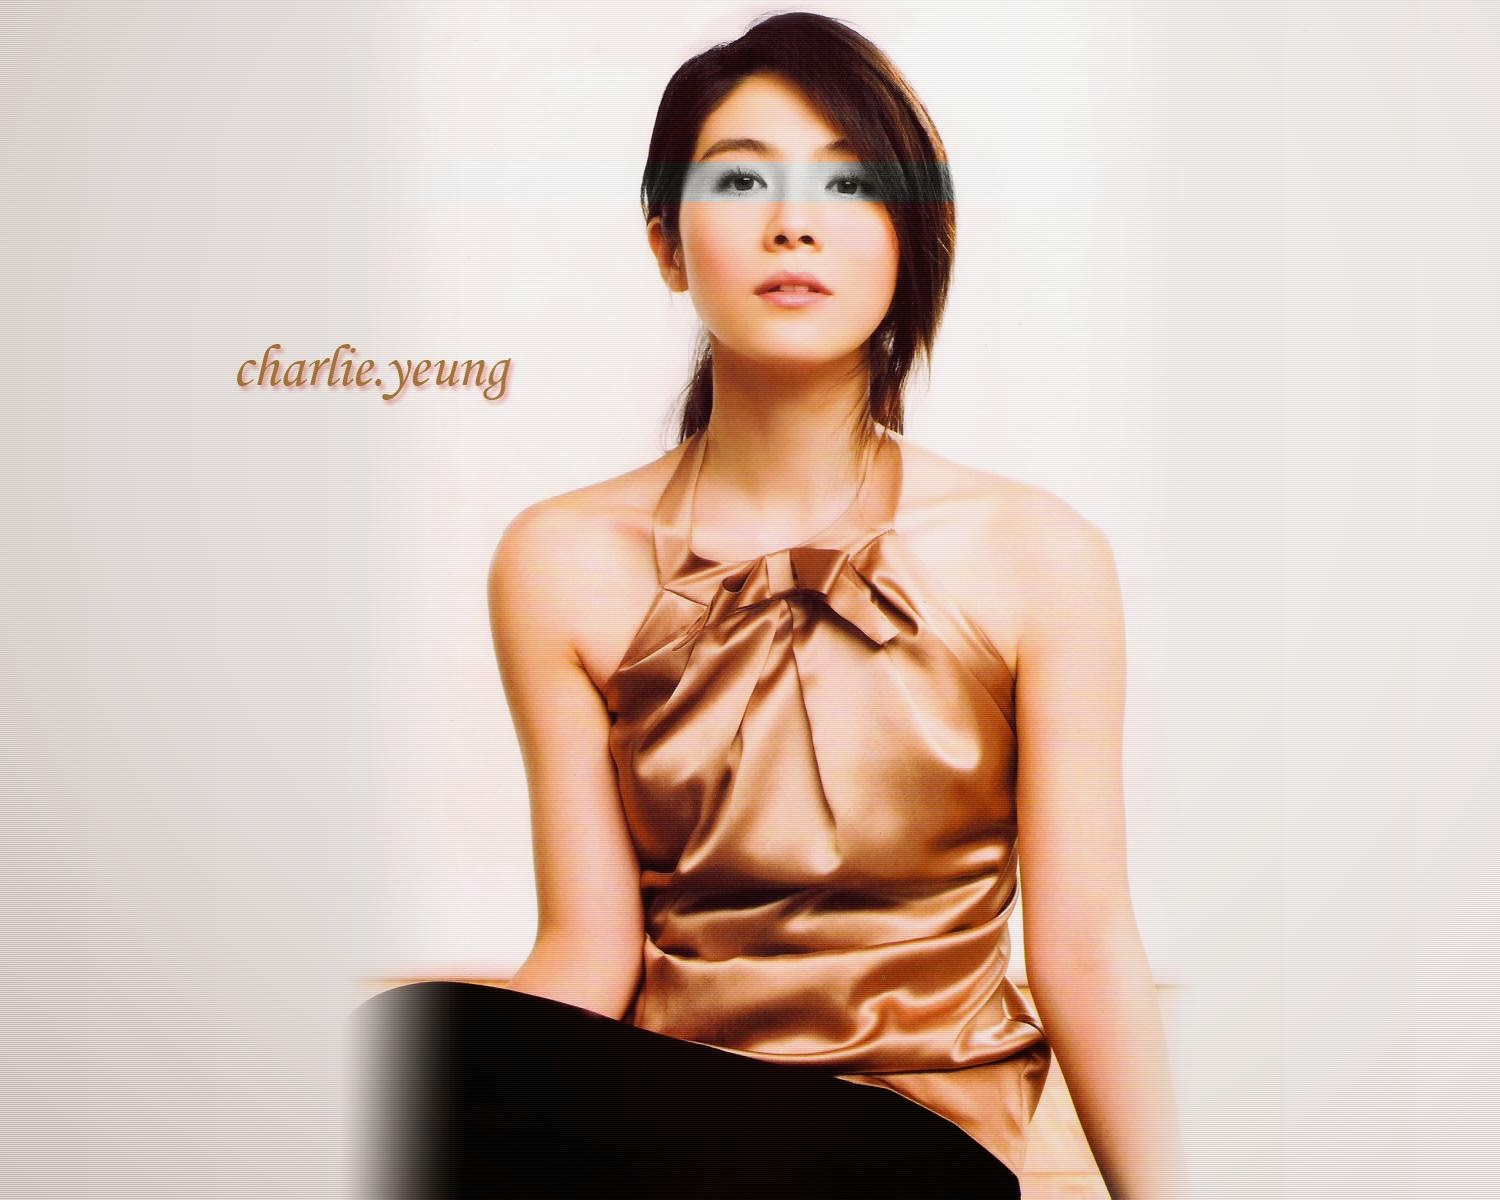 Charlie Yeung HD wallpapers Free Download